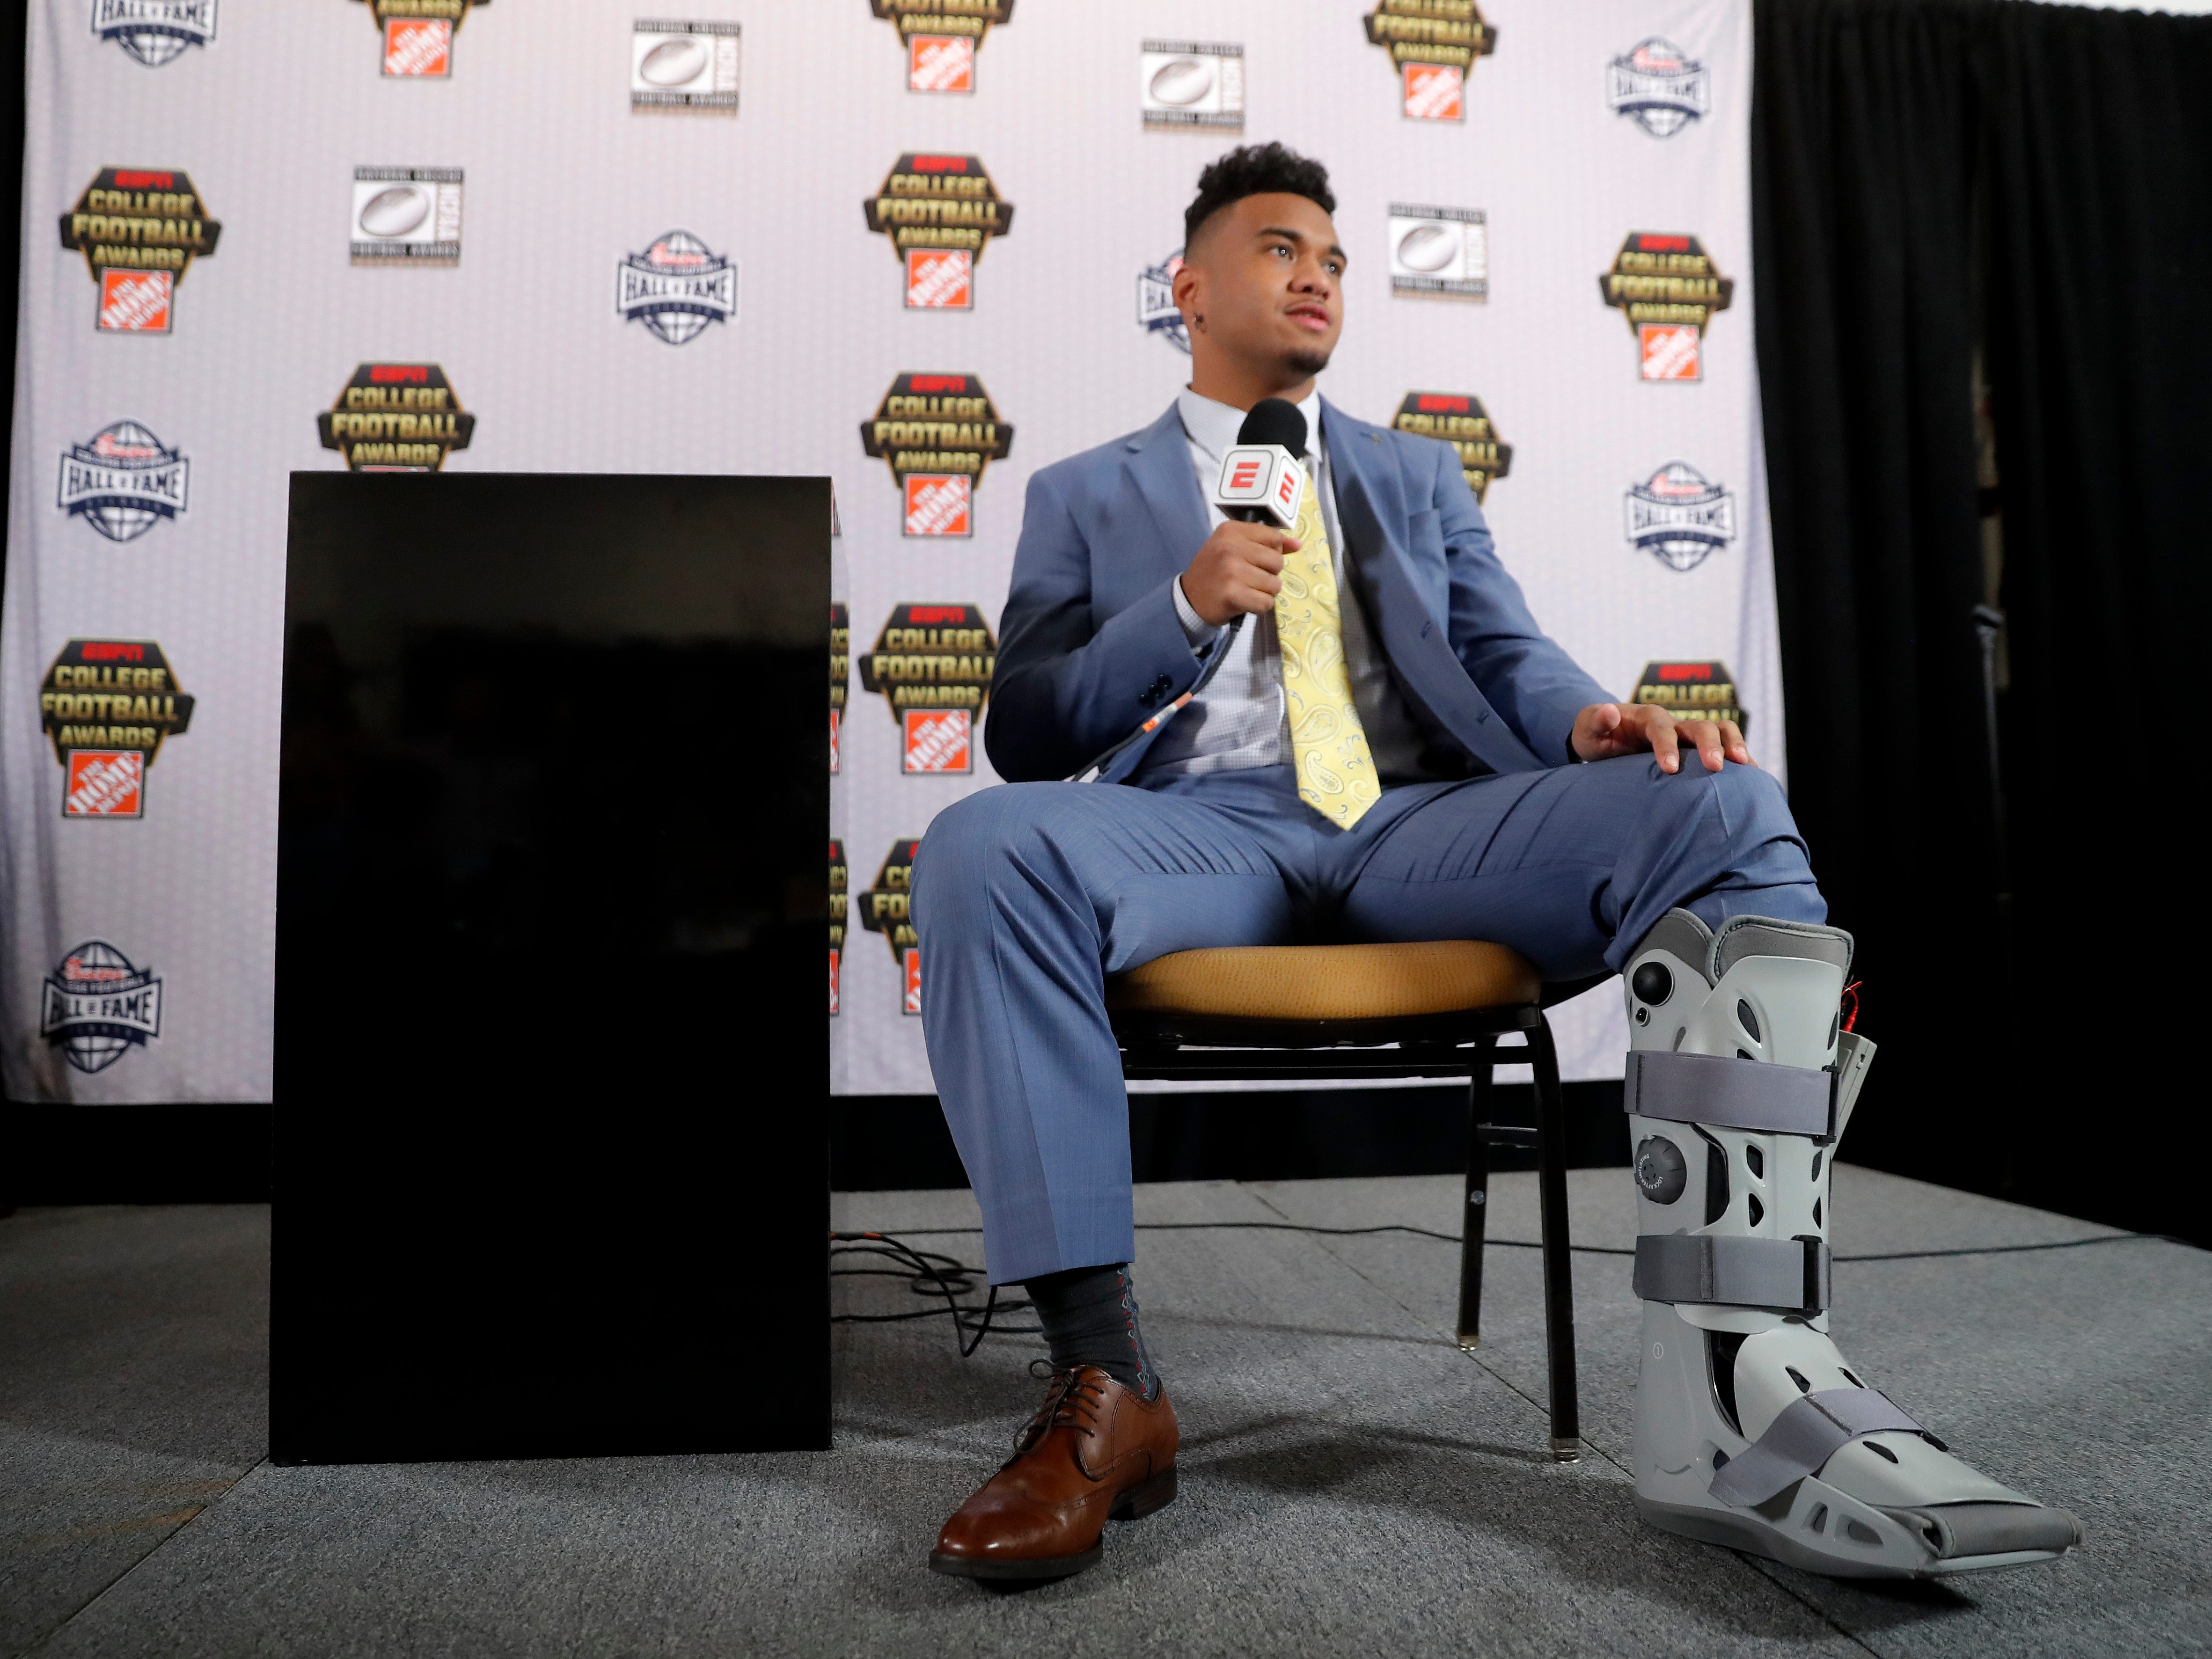 Alabama quarterback Tua Tagovailoa wears a protective boot on his injured foot as he speaks to reporters after winning the Maxwell Award and the Walter Camp honor. Tagovailoa was injured in the Southeast Conference championship game against Georgia.